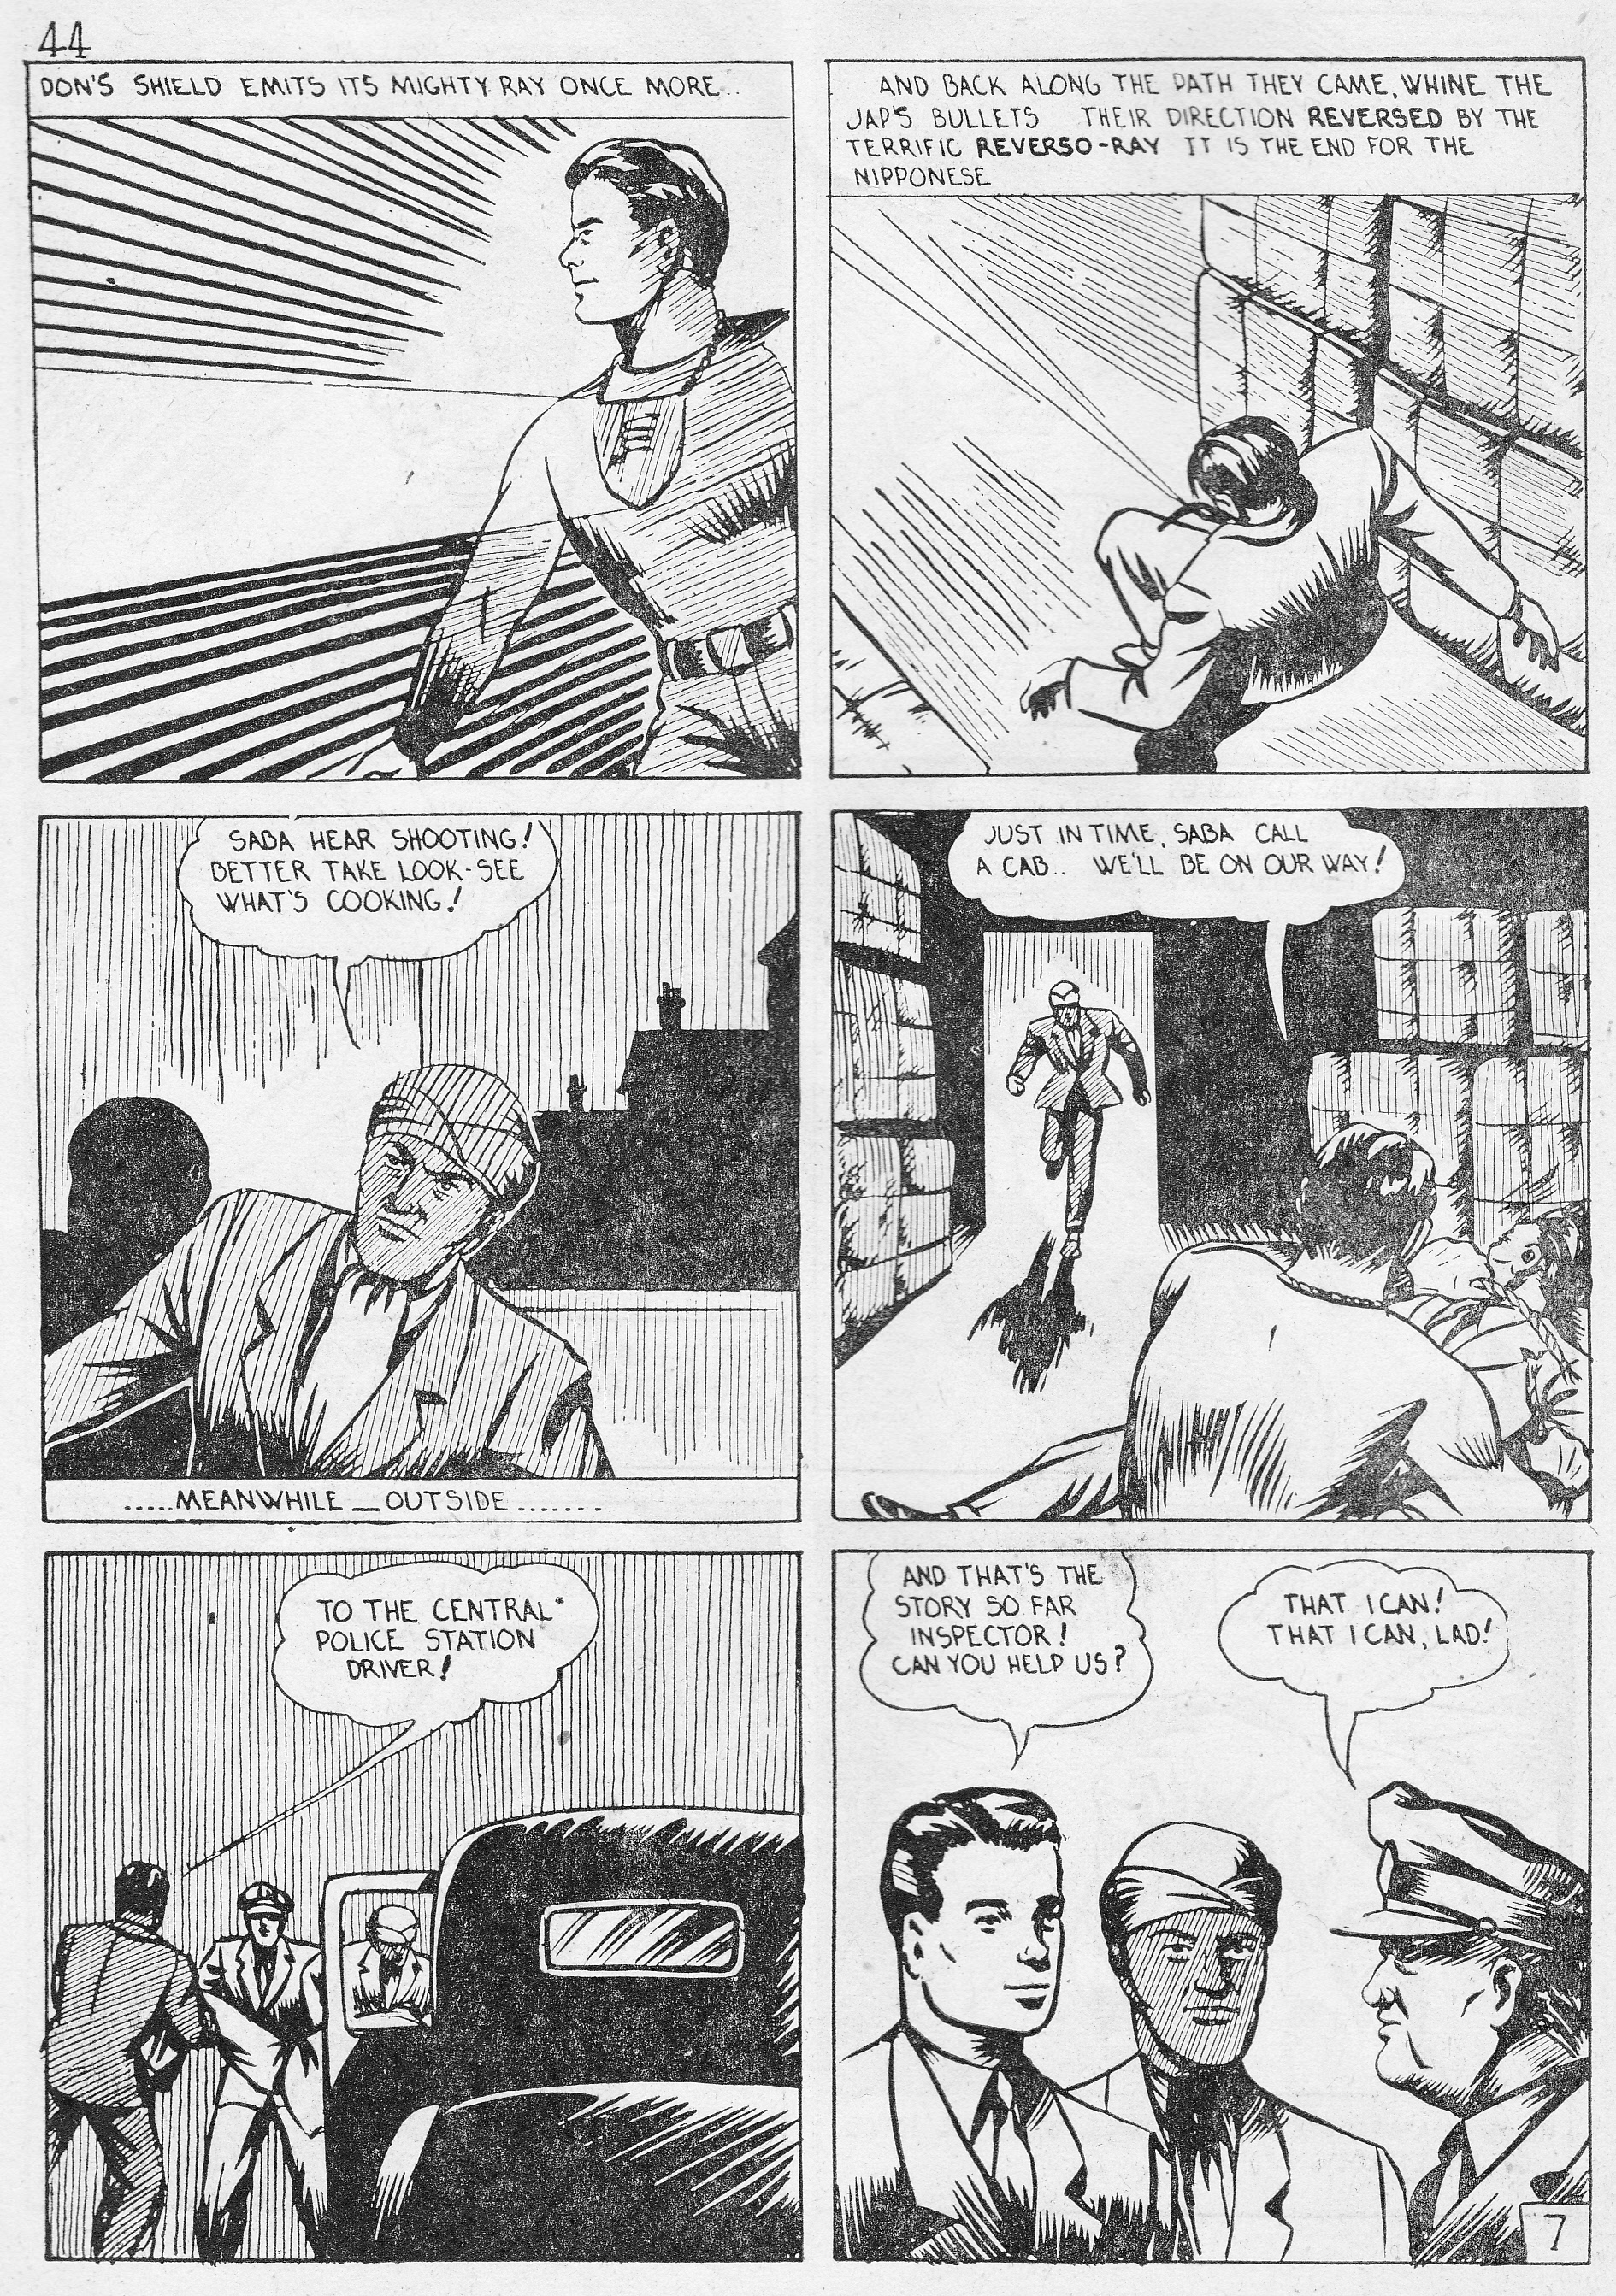 C:\Users\Robert\Documents\CARTOONING ILLUSTRATION ANIMATION\IMAGE CARTOON\IMAGE CARTOON D\DON SHEILD, Grand Slam Comics, 1-4, March 1942, 44.jpg